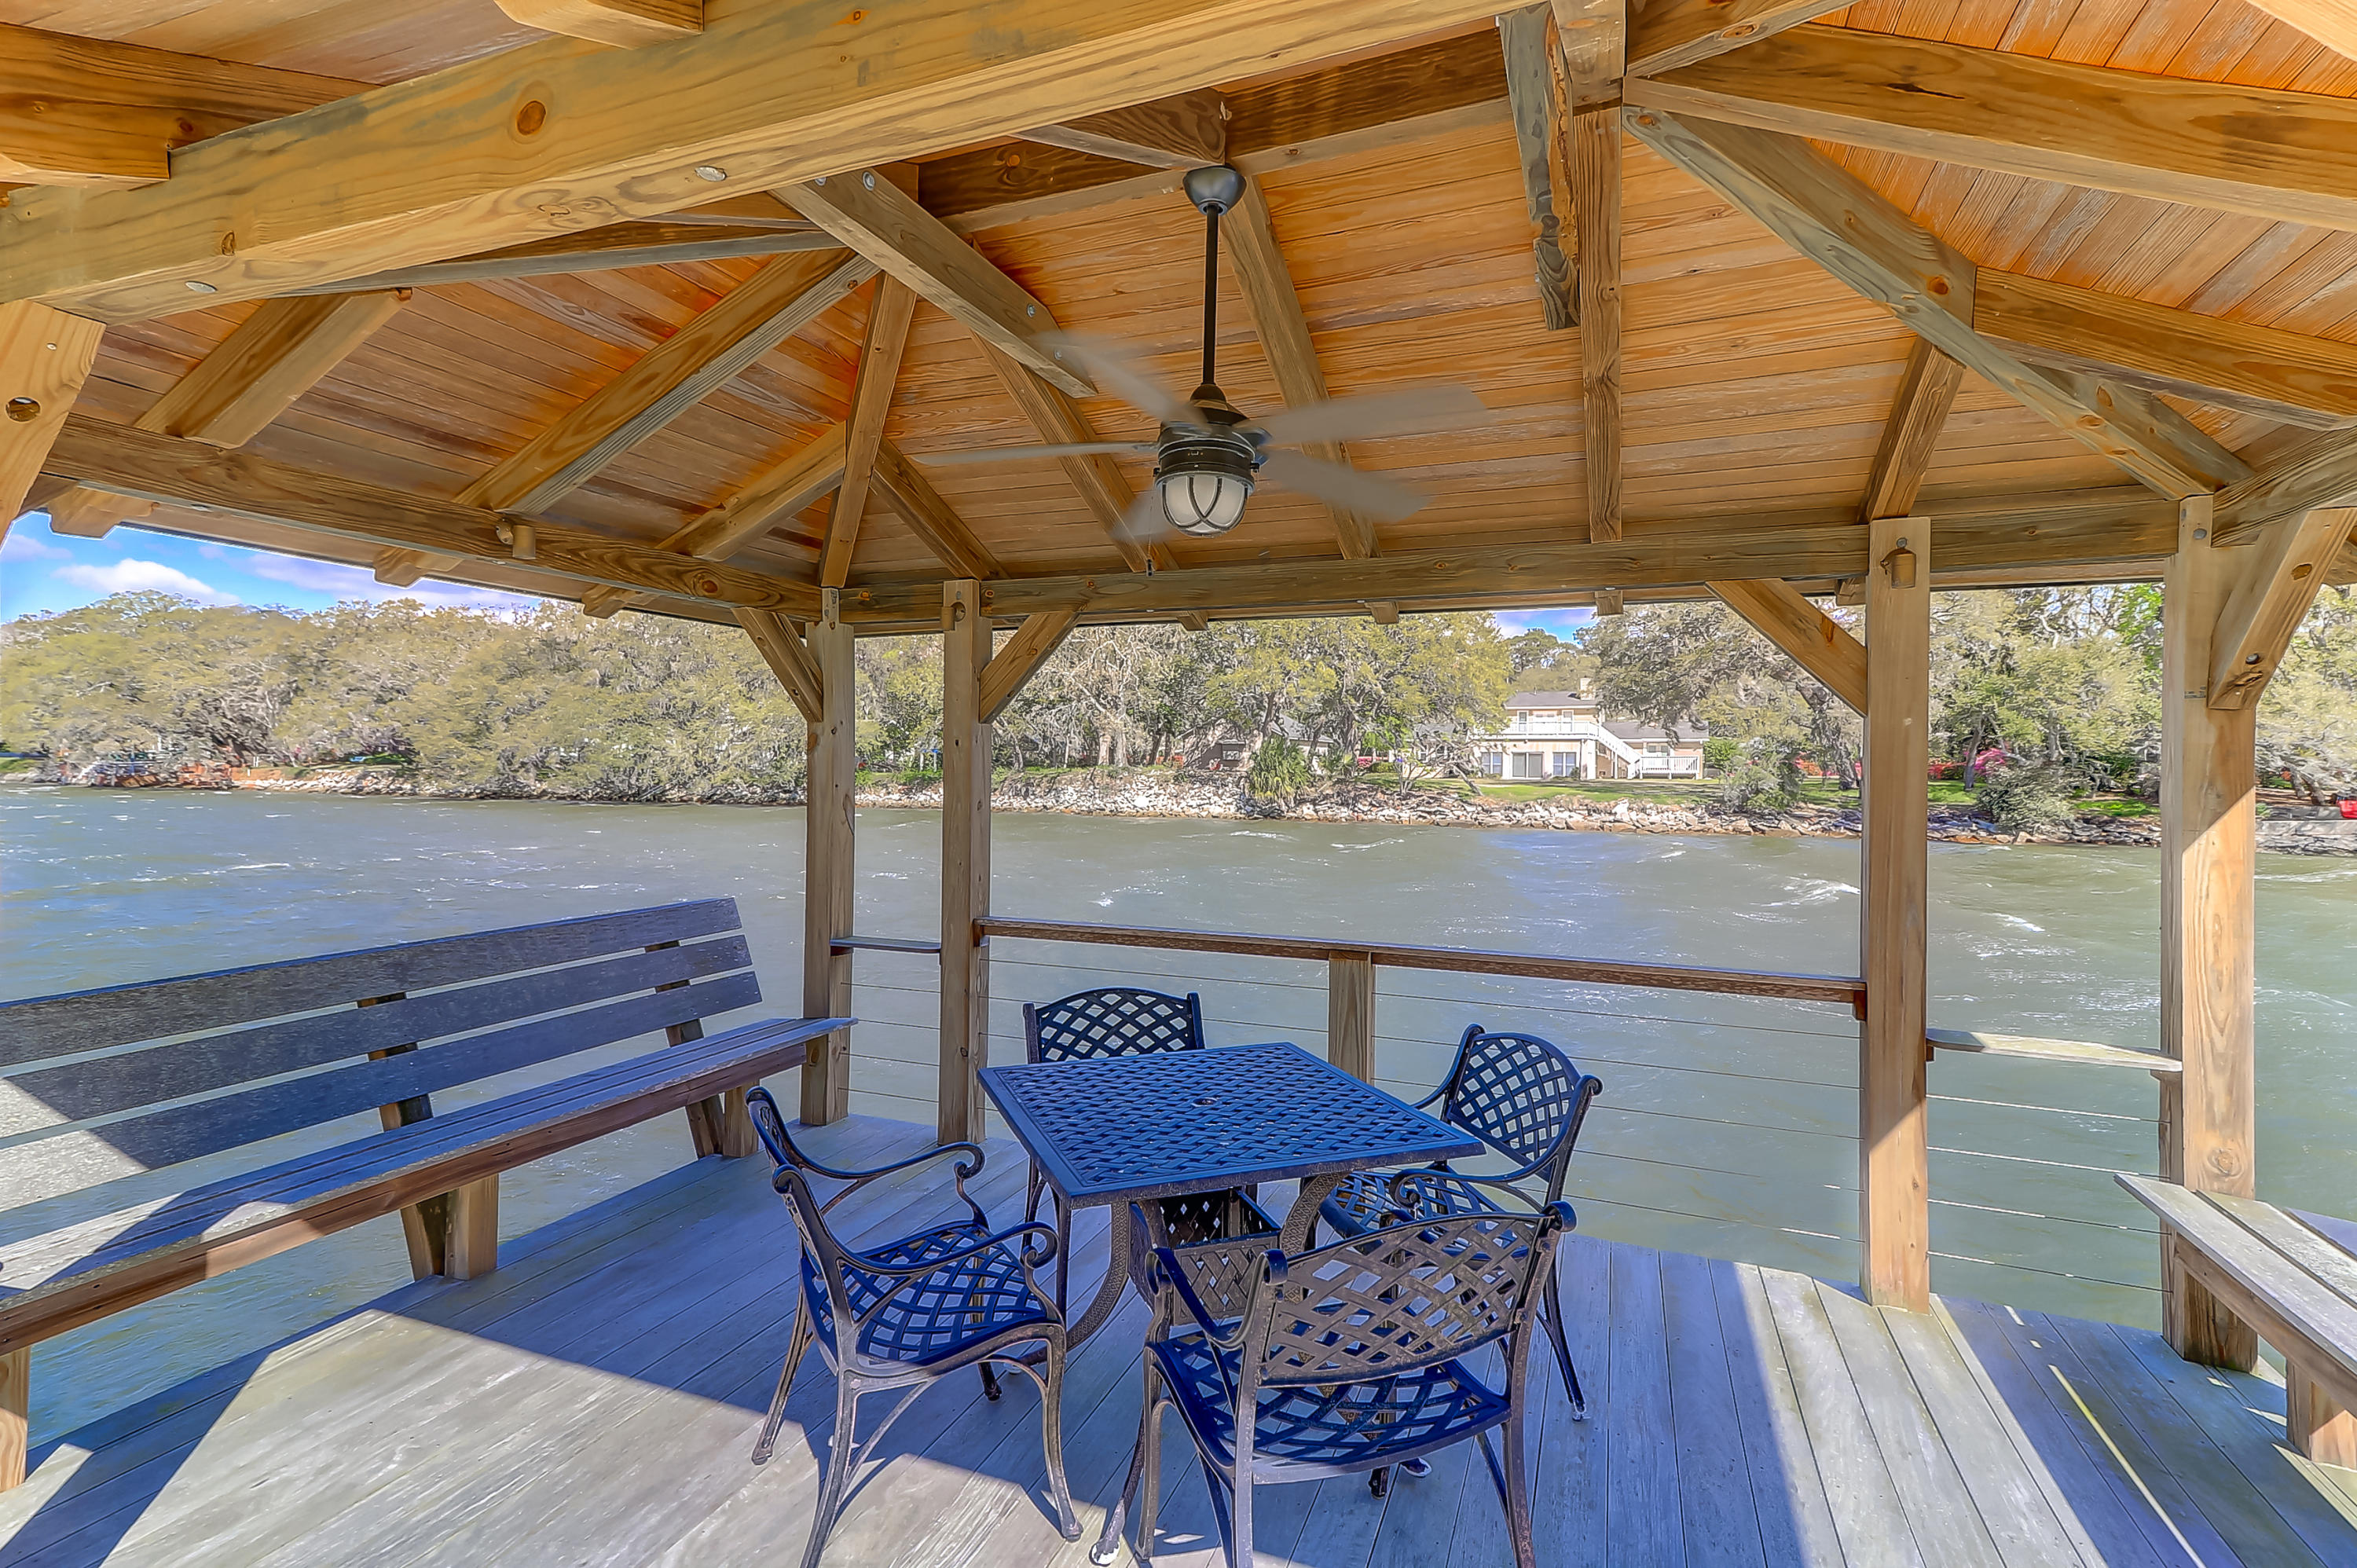 Home for sale 2170 Wappoo Hall Road, Riverland Terrace, James Island, SC